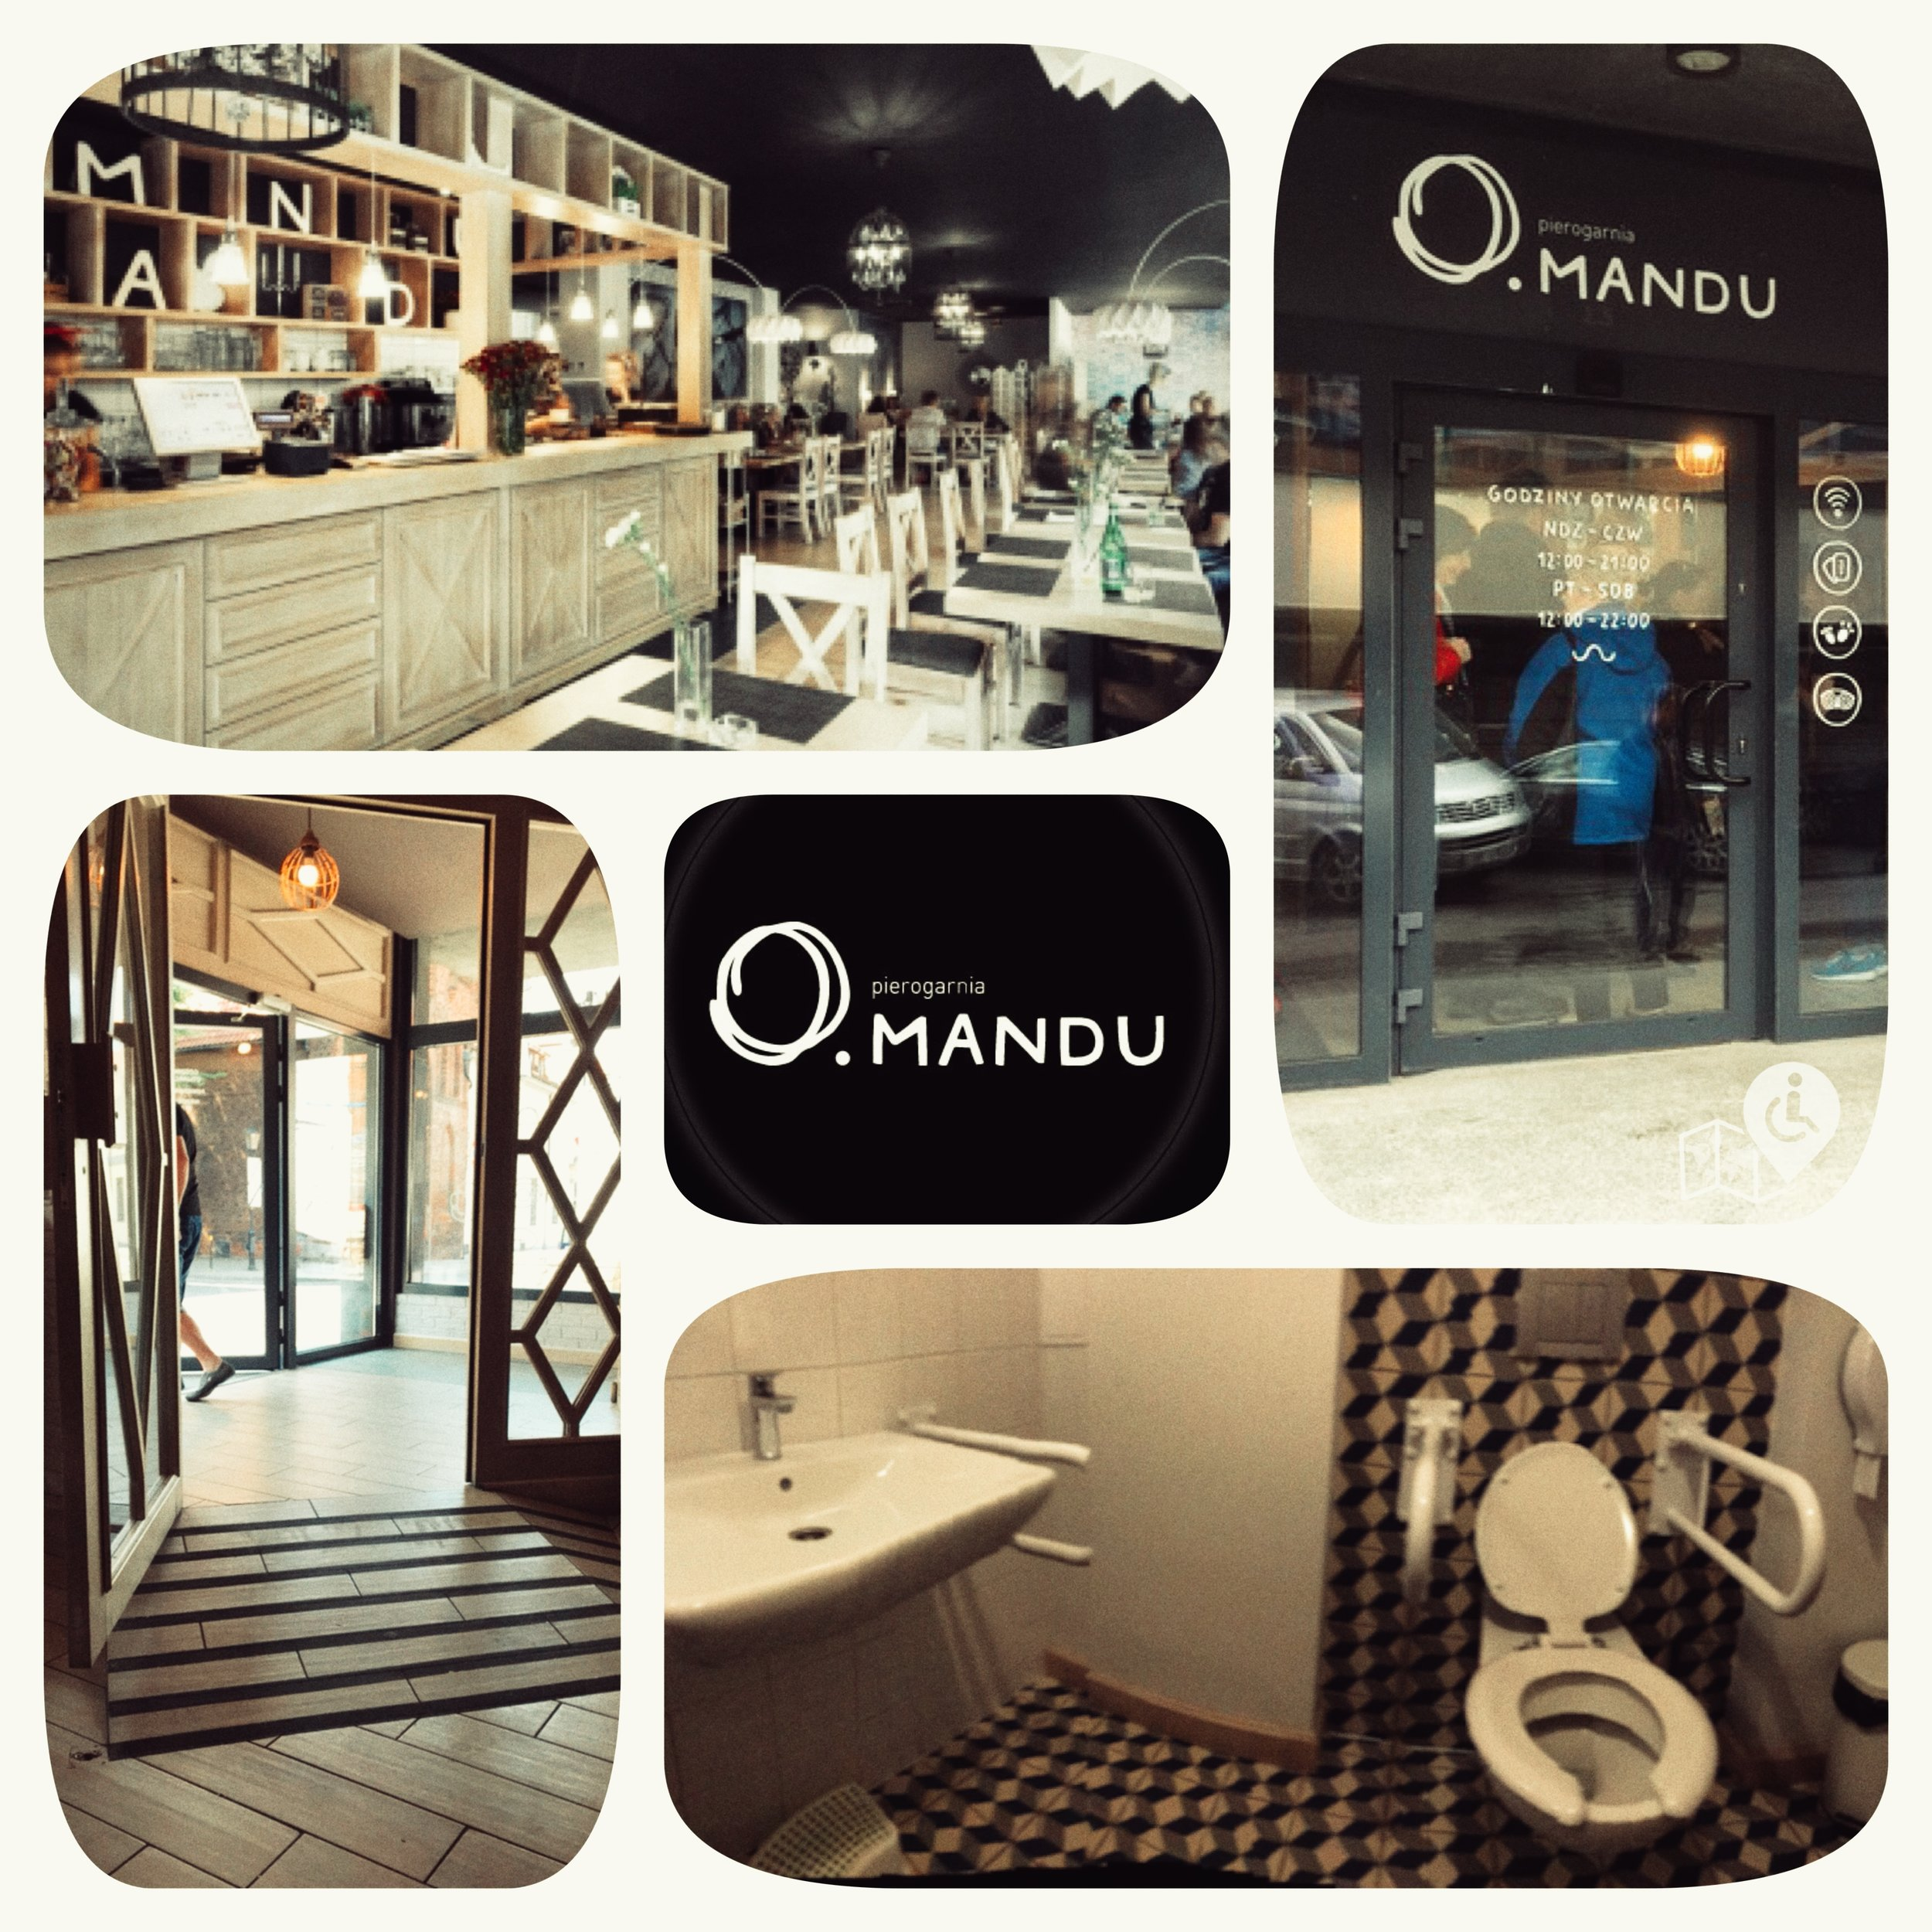 Mandu is a fully-accessible restaurant who serves traditional polish food. Yummy